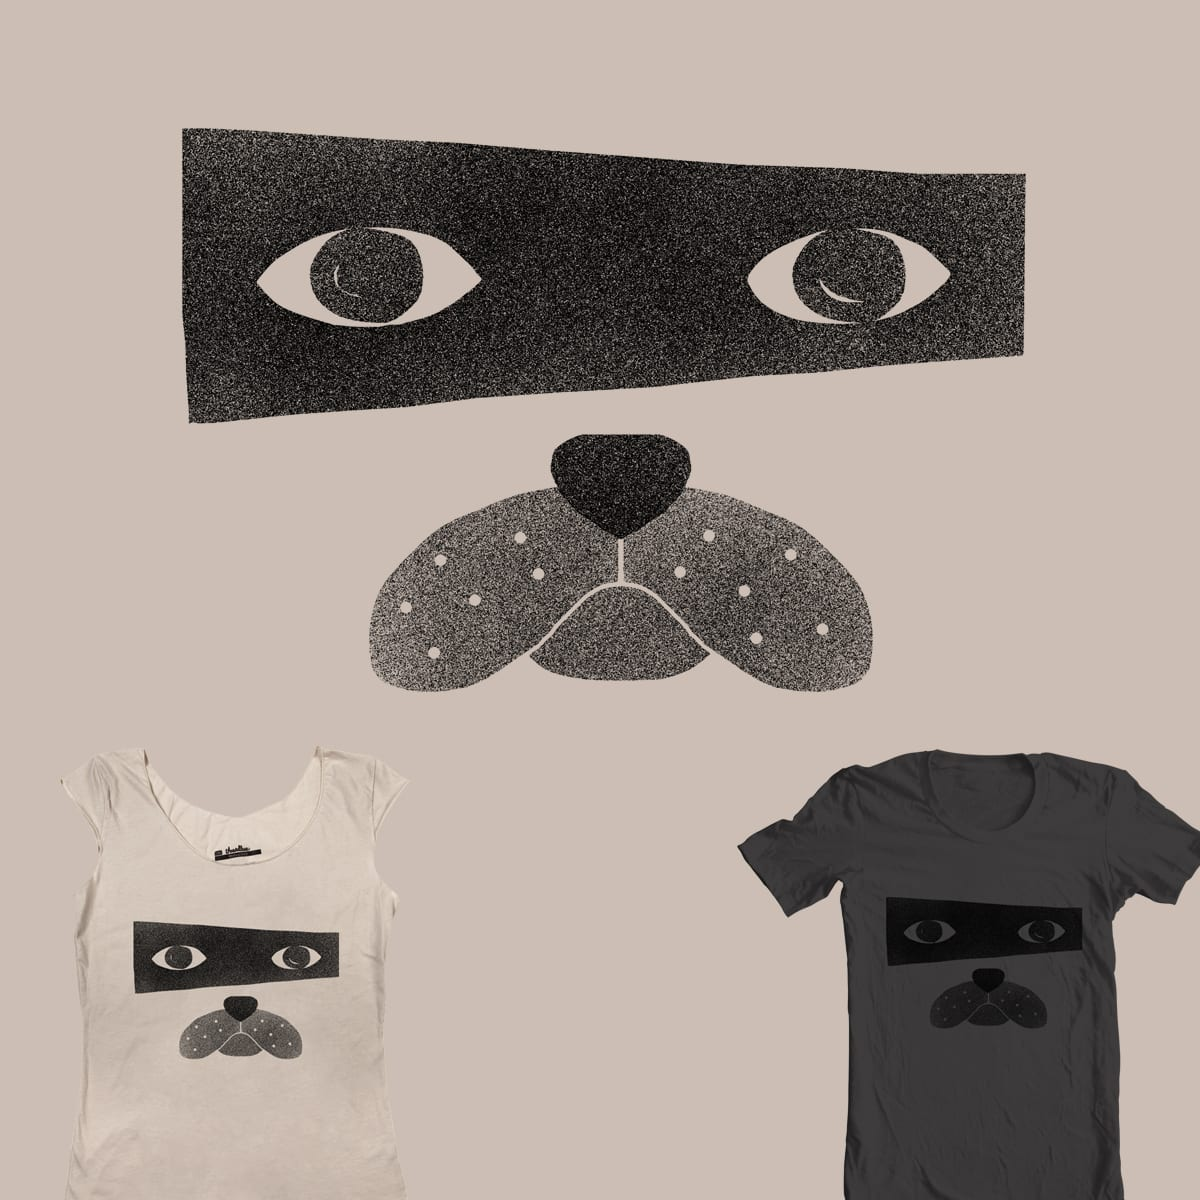 Bandito by Farnell on Threadless